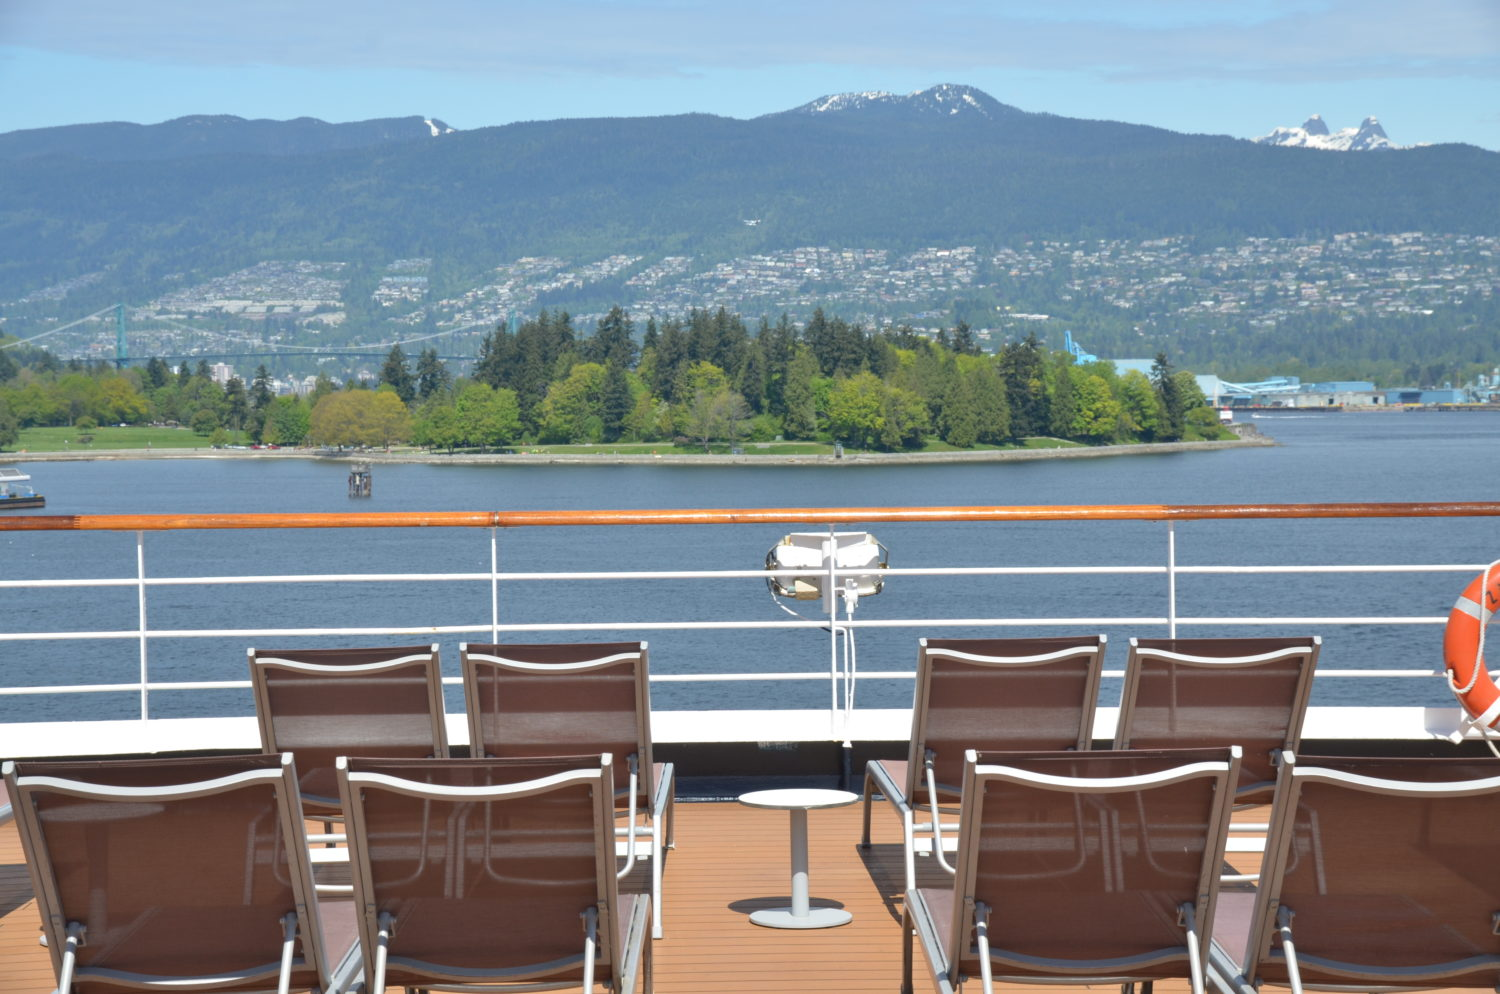 stanley park from cruise ship